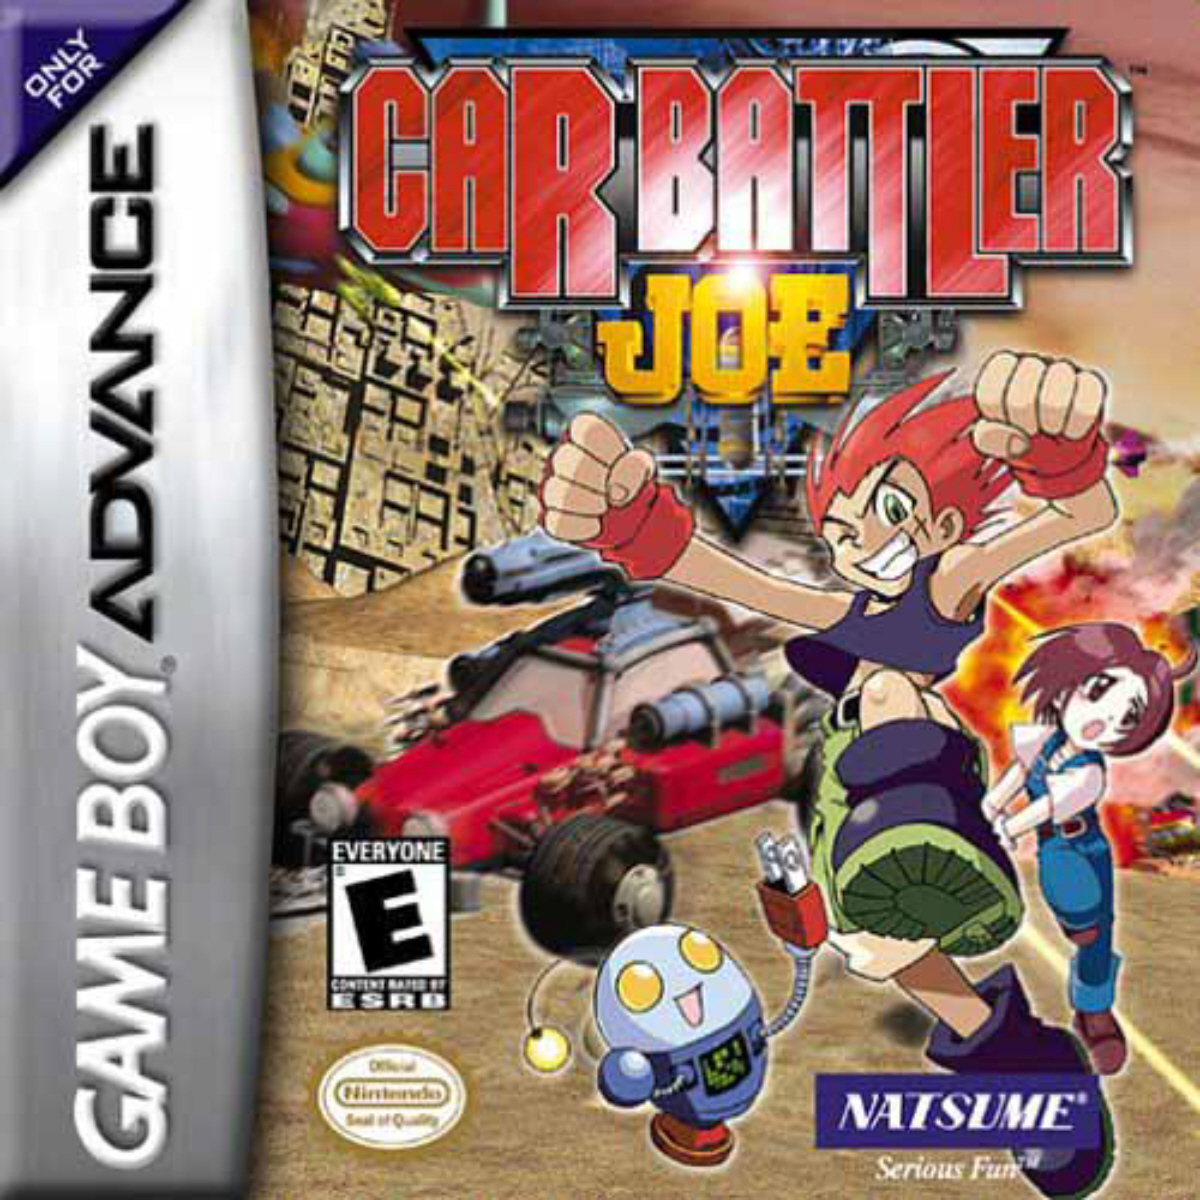 Gameboy color and advance rpg games - Car Battler Joe Box Artwork Game Boy Advance